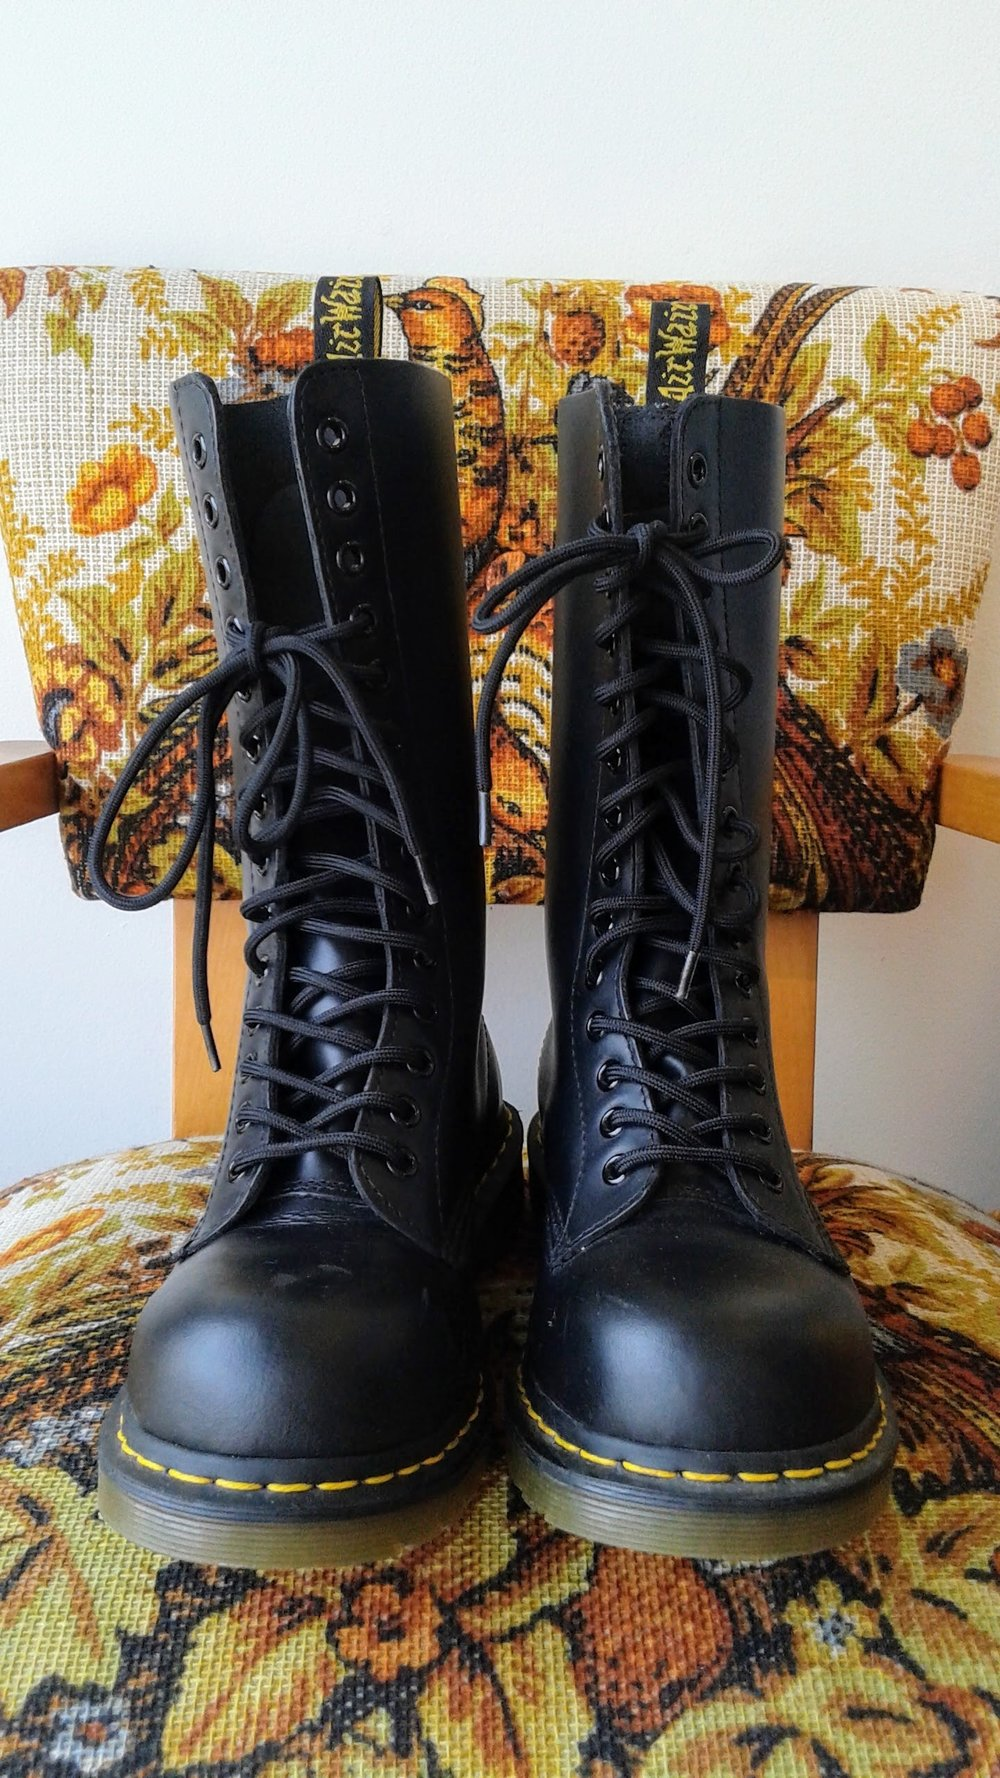 Doc Martens boots; S7, $145